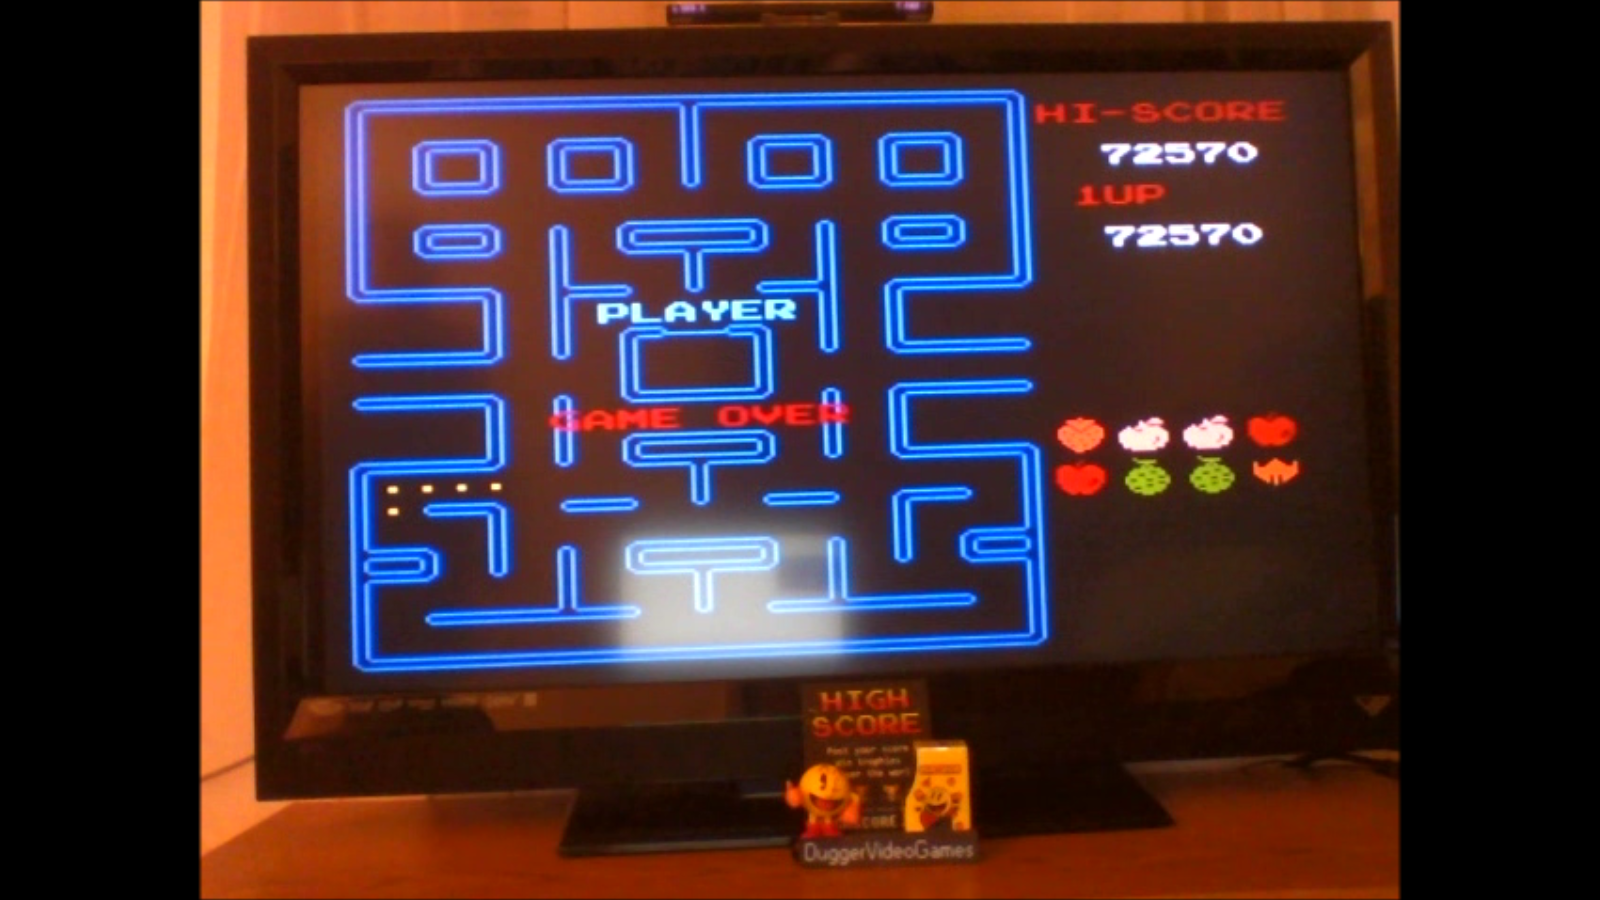 DuggerVideoGames: Pac-Man (NES/Famicom Emulated) 72,570 points on 2016-11-19 04:21:38